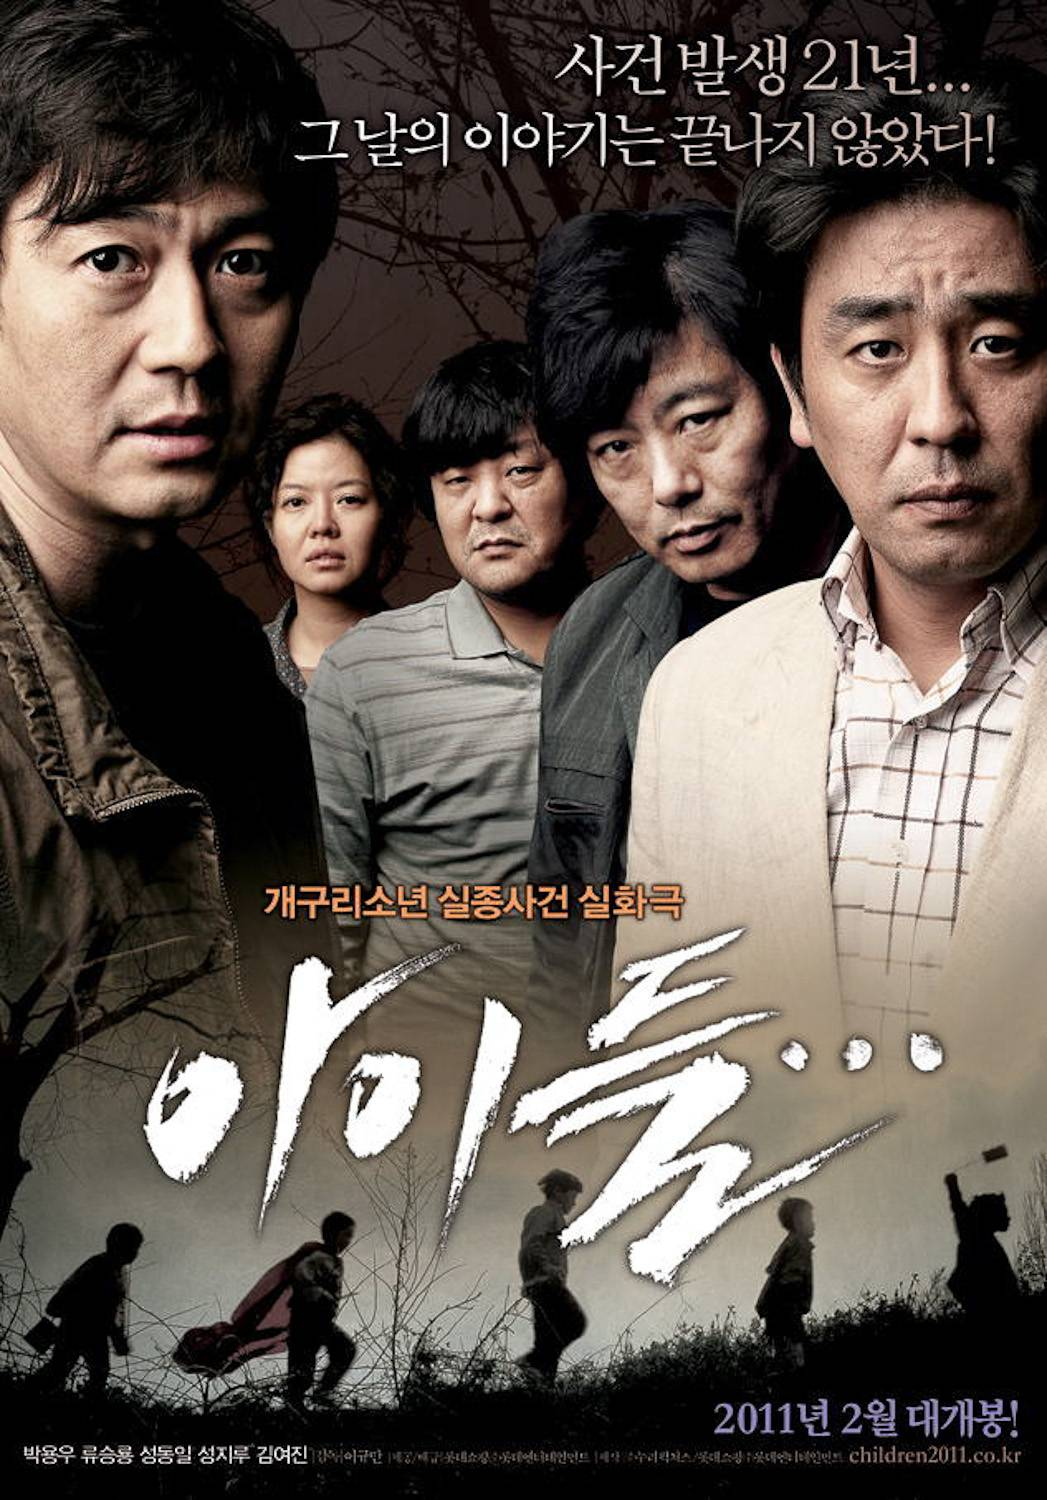 Hancinema 39 s film review korean weekend box office 2011 - Movie box office results this weekend ...